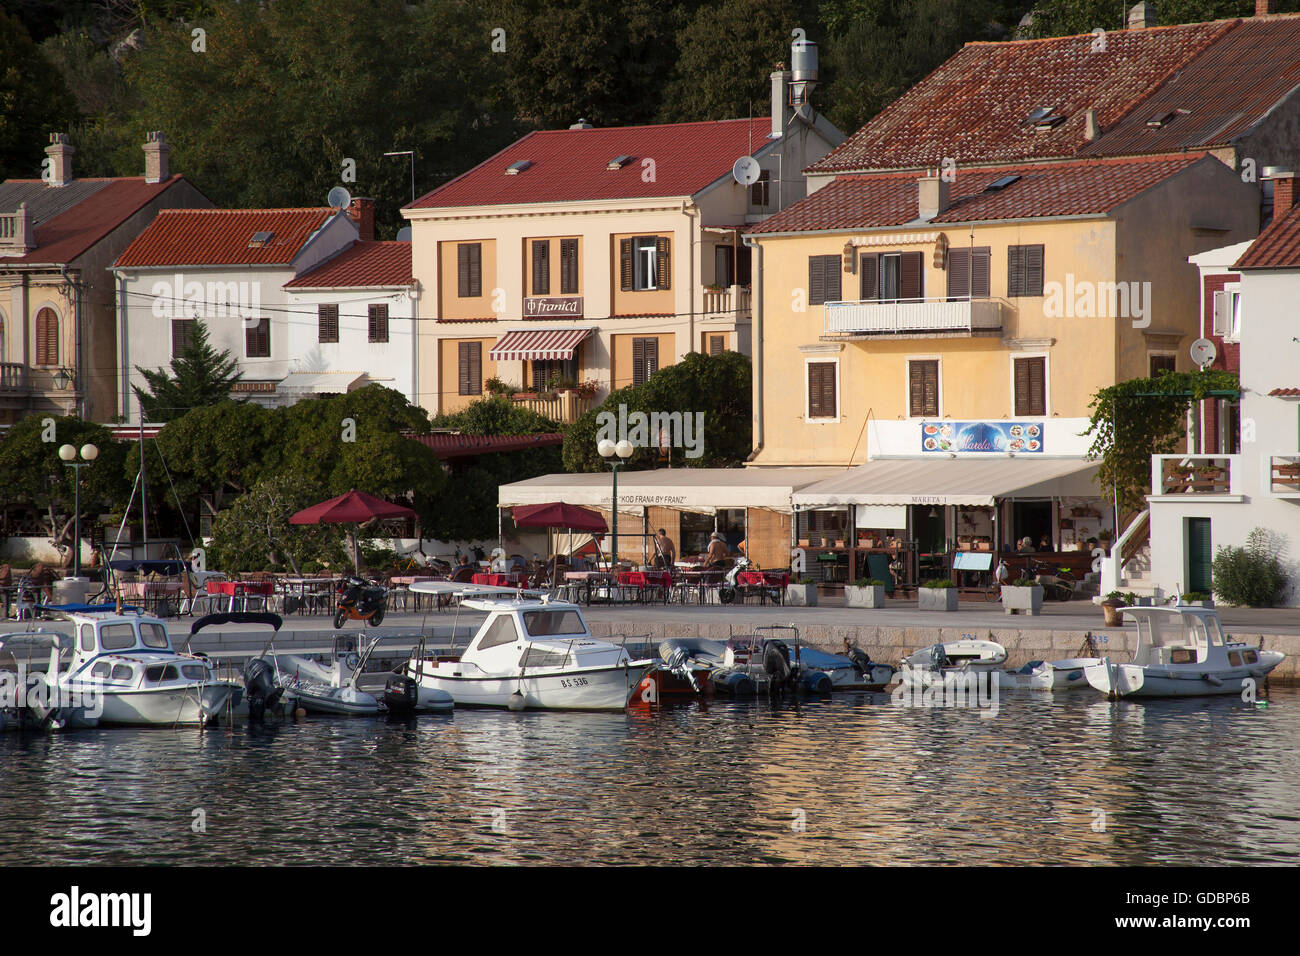 Bay and harbor of Baska, Krk, Kvarner Bay, Adriatic Sea, Croatia - Stock Image